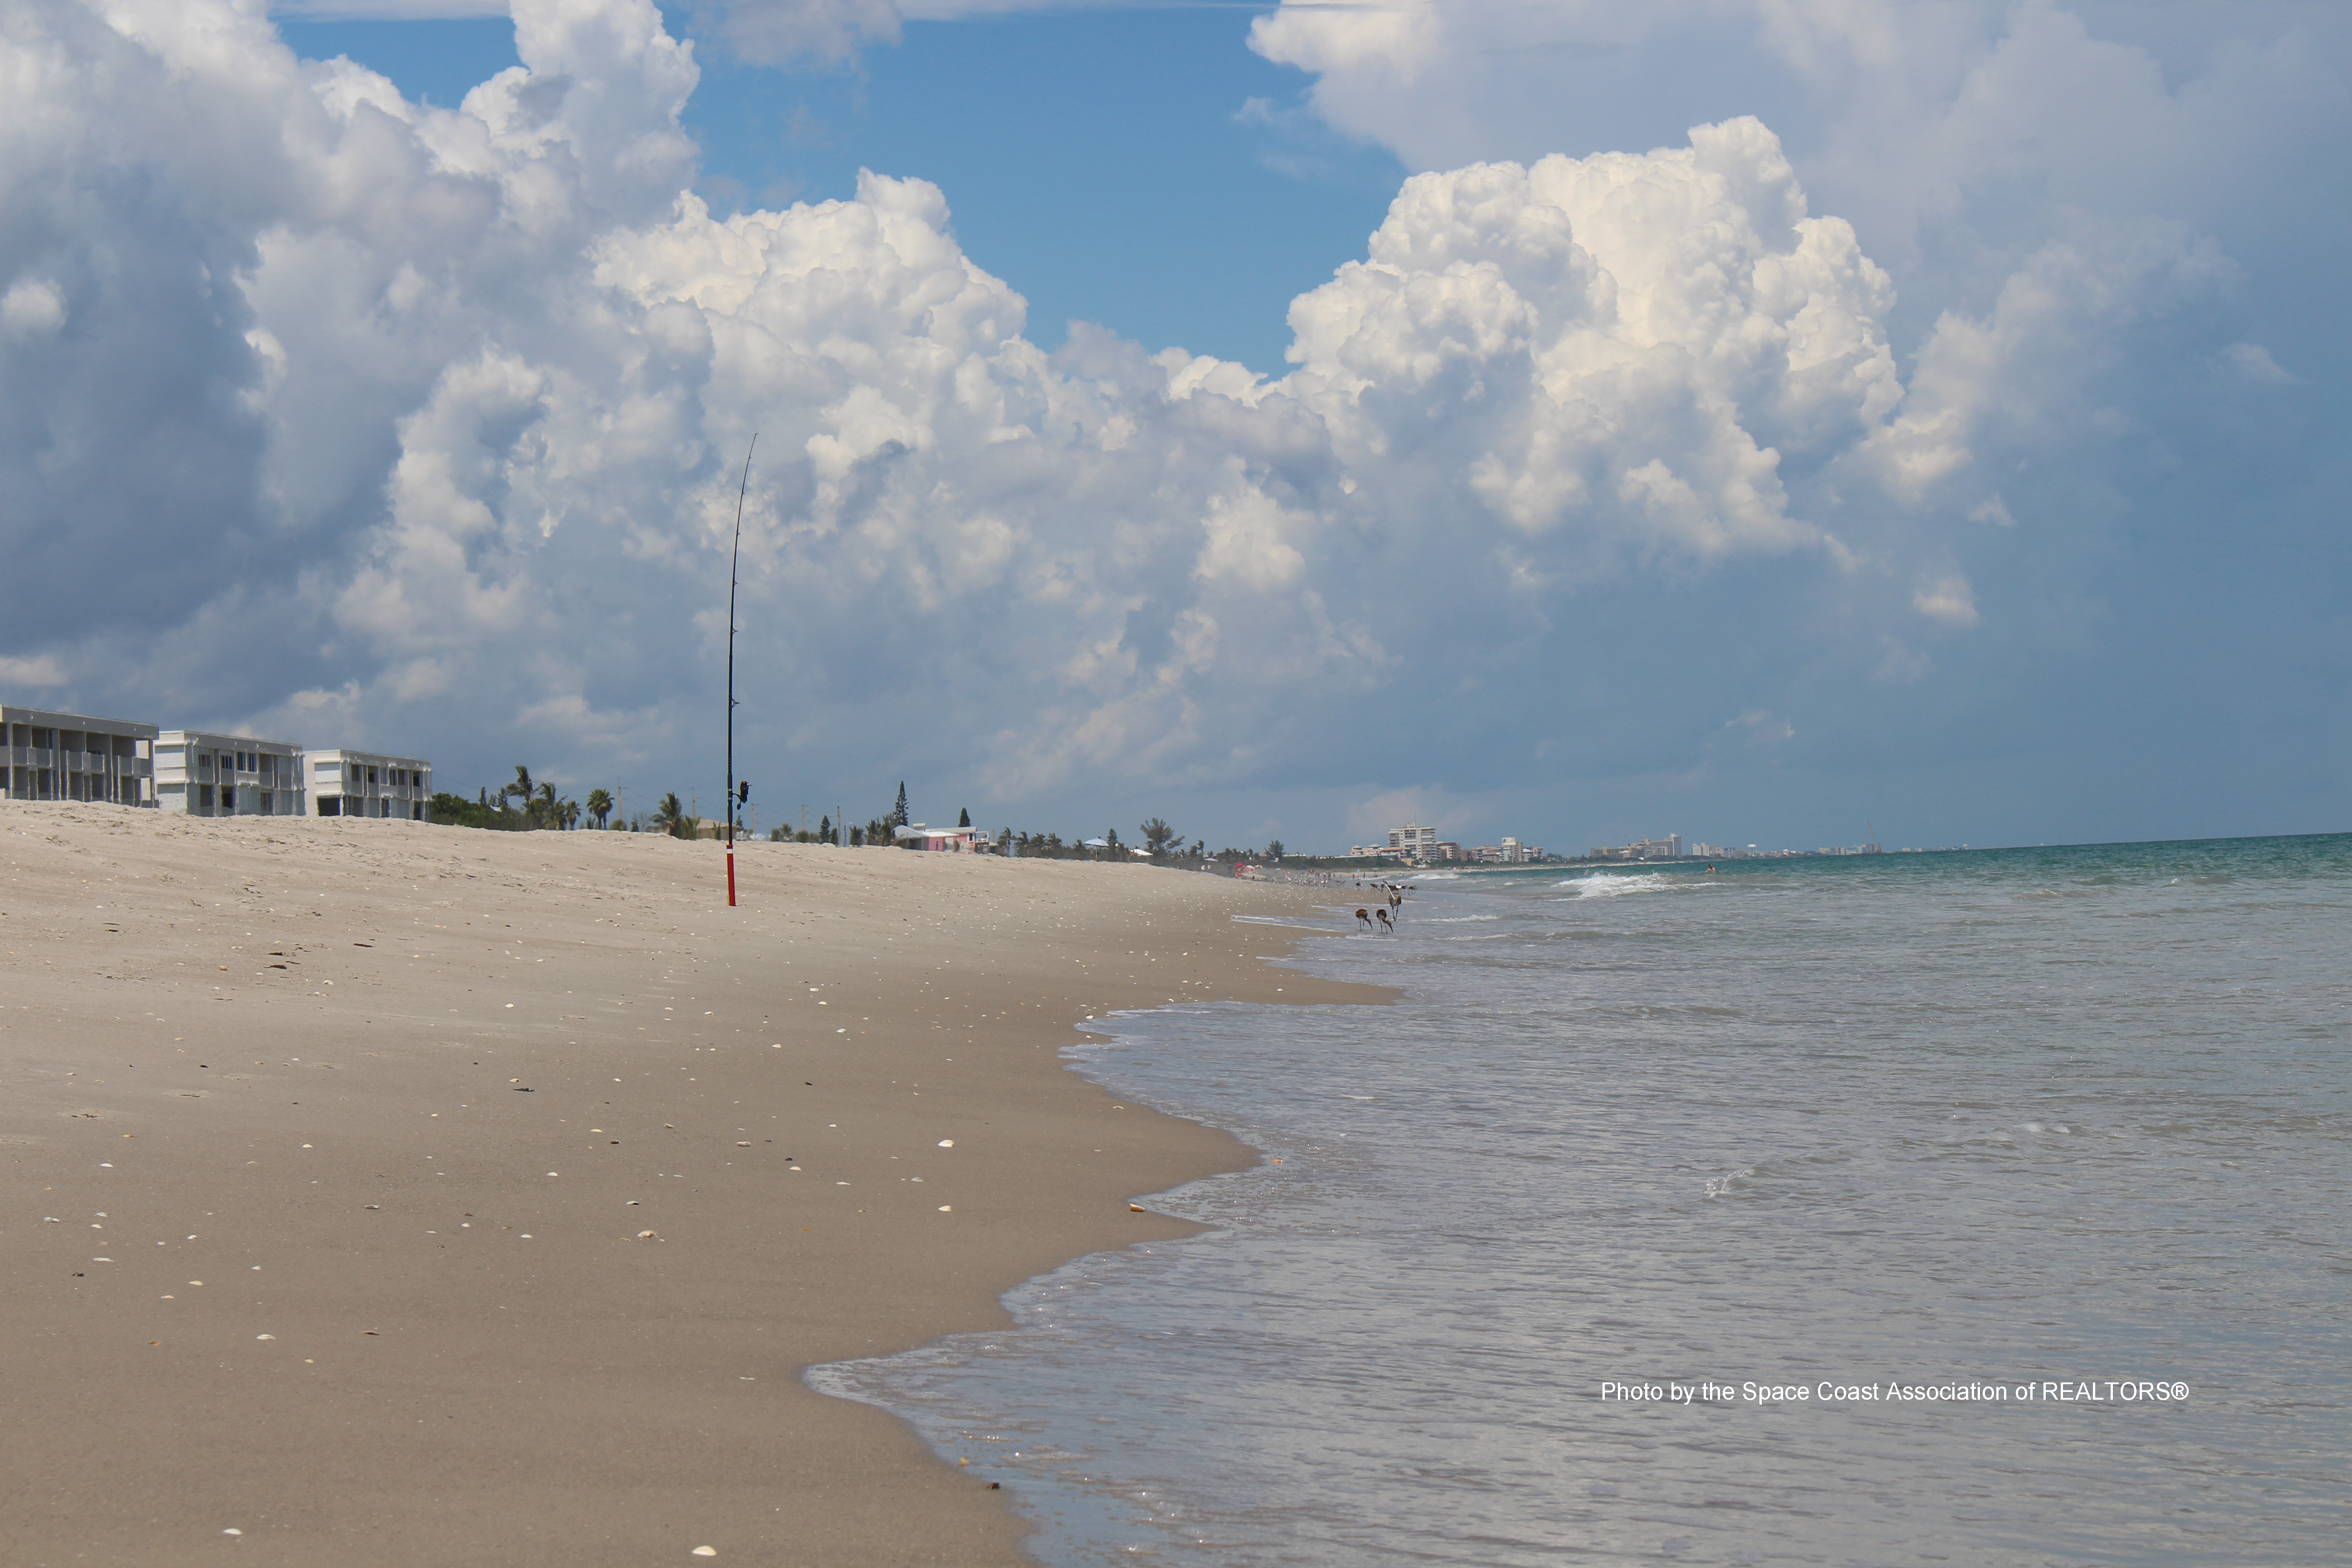 fishing at Melbourne Beach, Florida